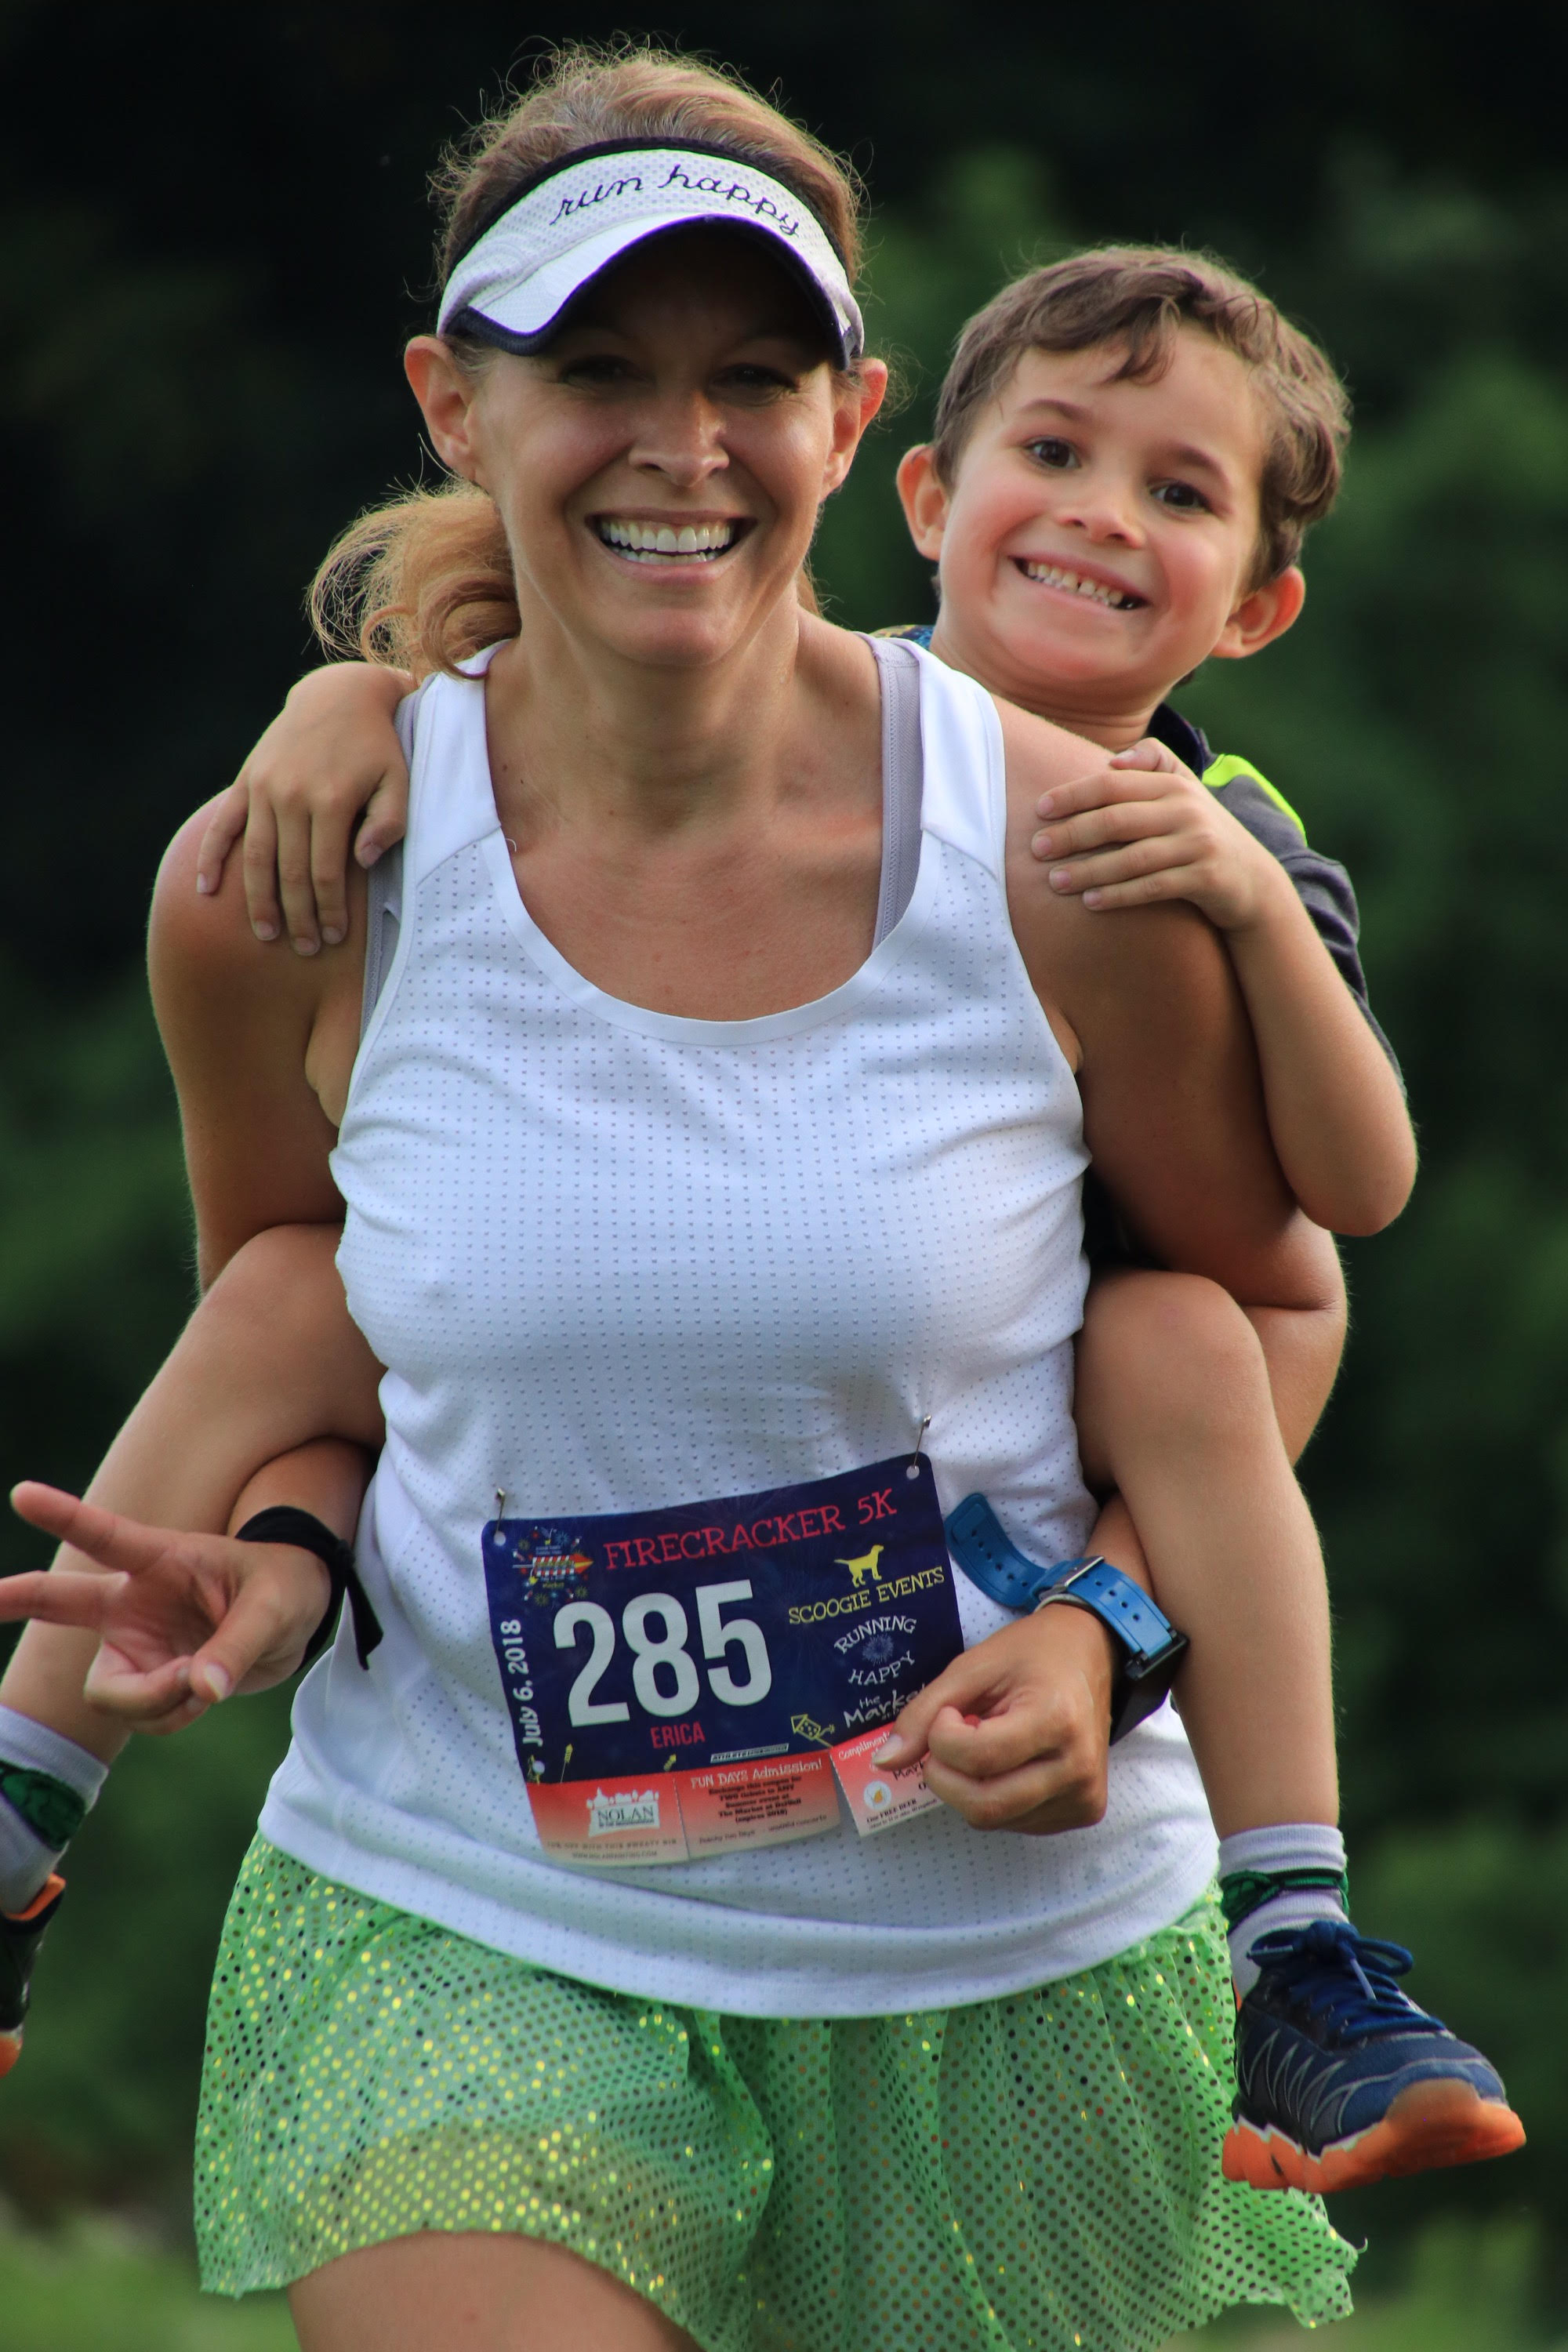 The Doylestown Run Fest truly has something for EVERYONE in the family!